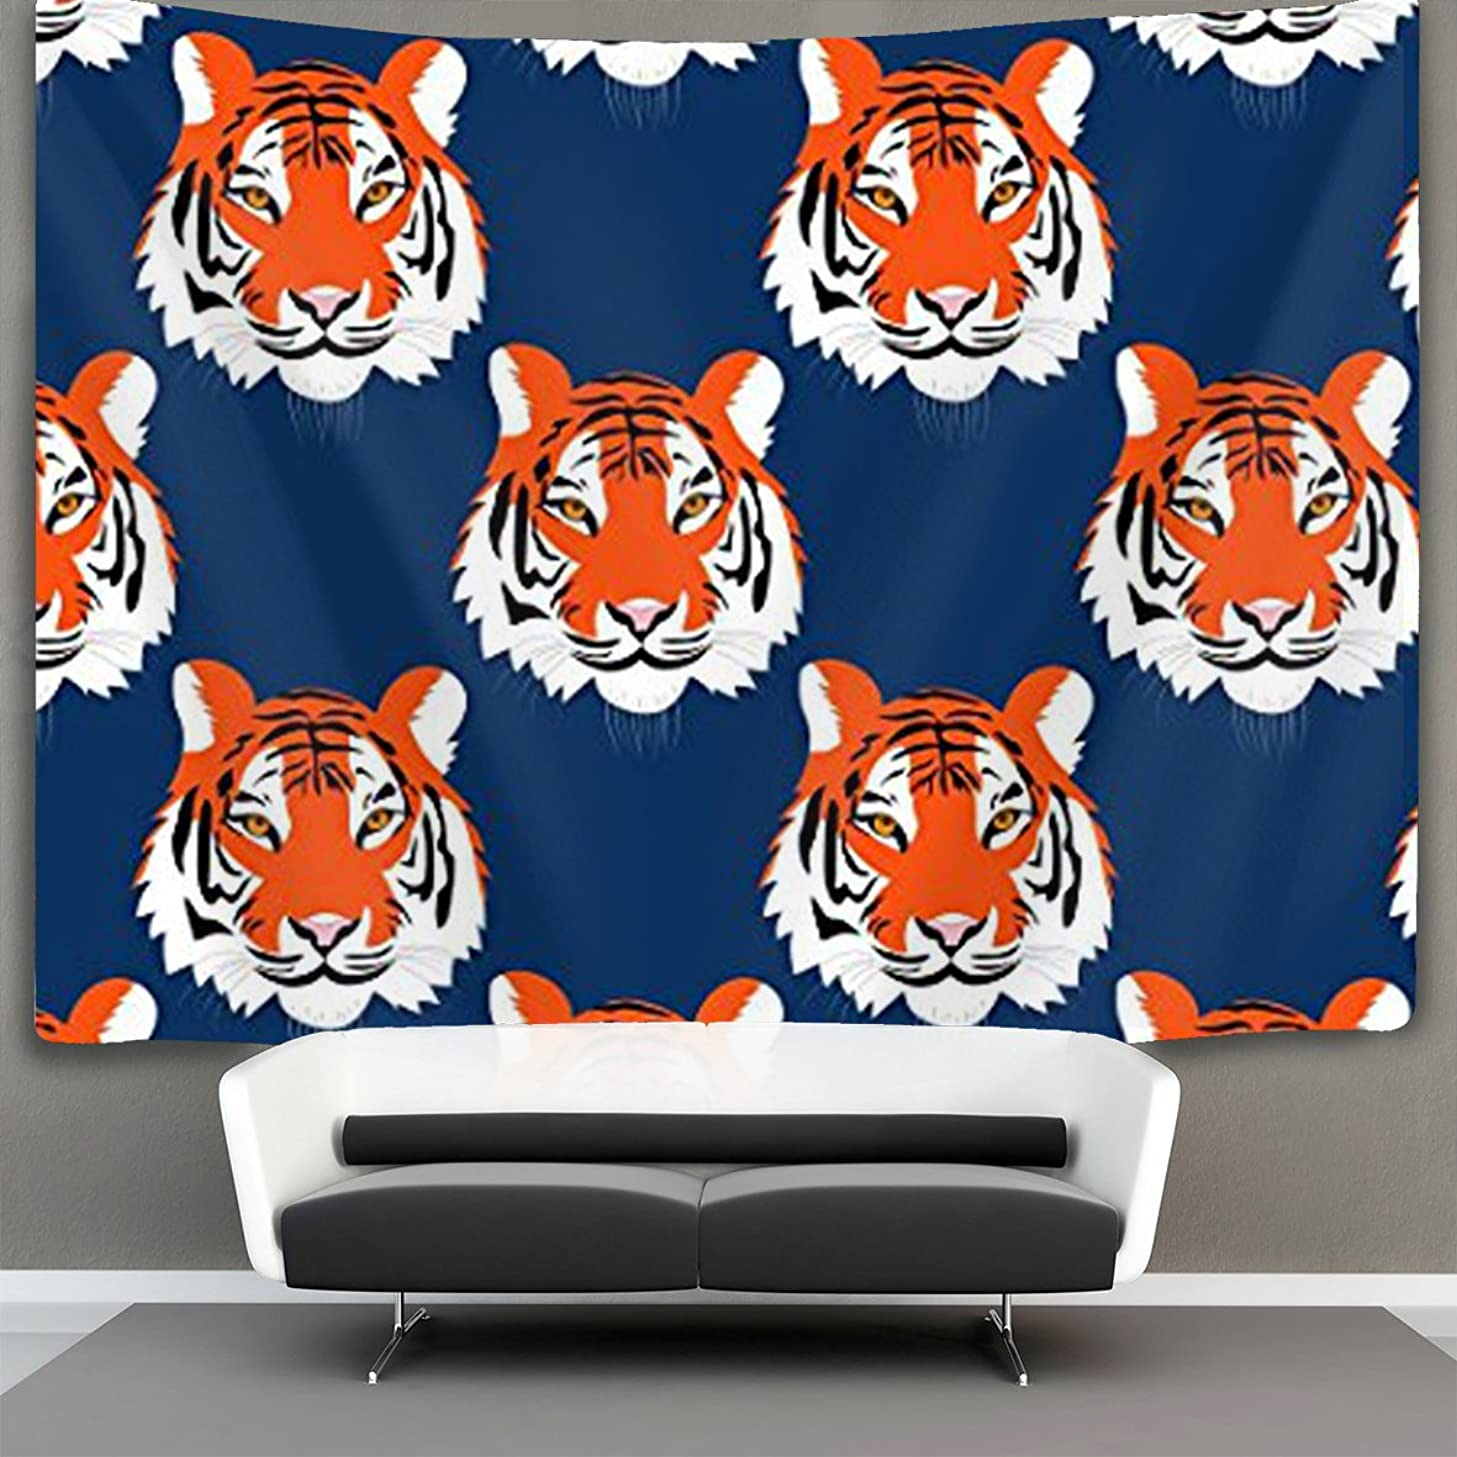 JACINTAN Jungle Tigers in Auburn Colors Wall Tapestry Hippie Art Tapestry Wall Hanging Home Decor Extra Large tablecloths 60x70 inches for Bedroom Living Room Dorm Room